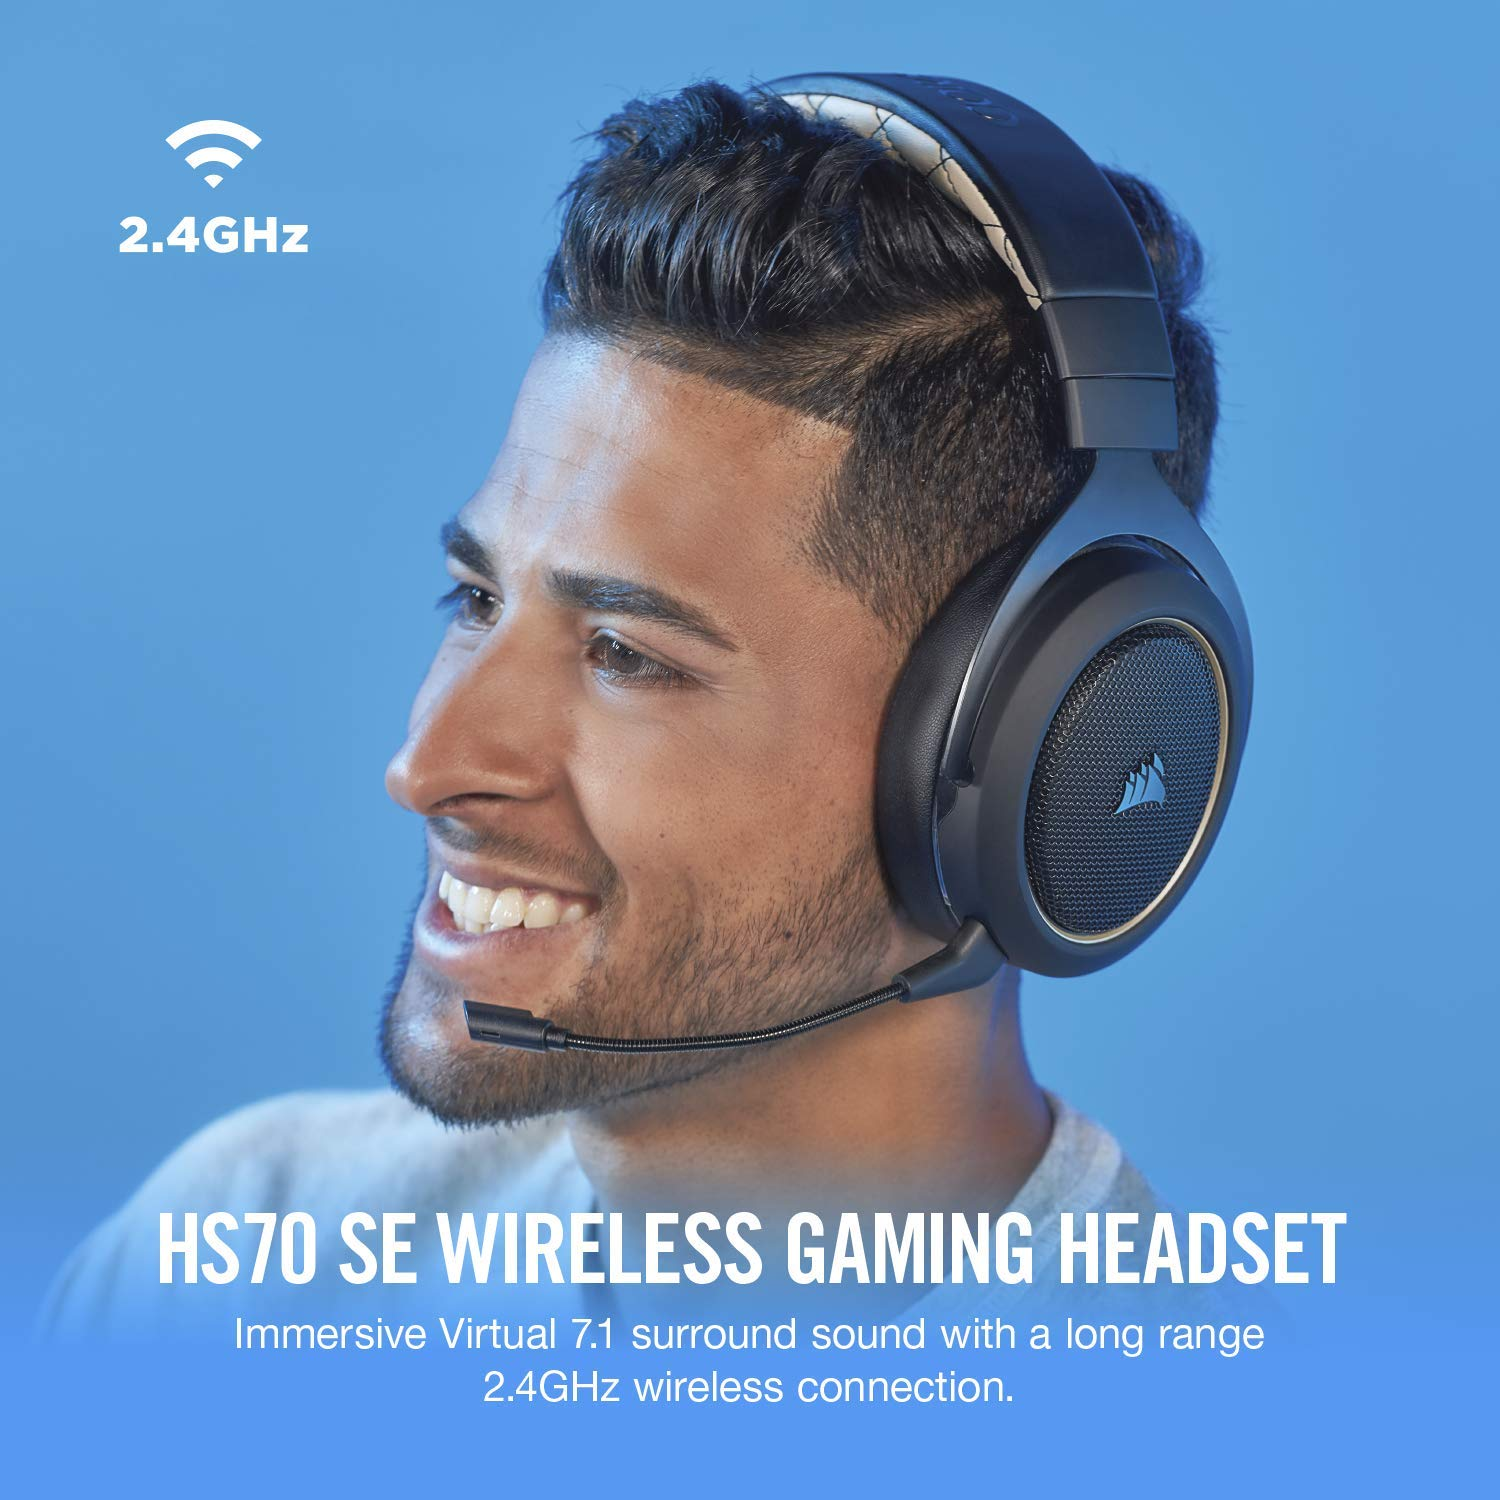 CORSAIR HS70 SE Wireless - 7.1 Surround Sound Gaming Headset - Discord Certified Headphones - Special Edition by Corsair (Image #1)